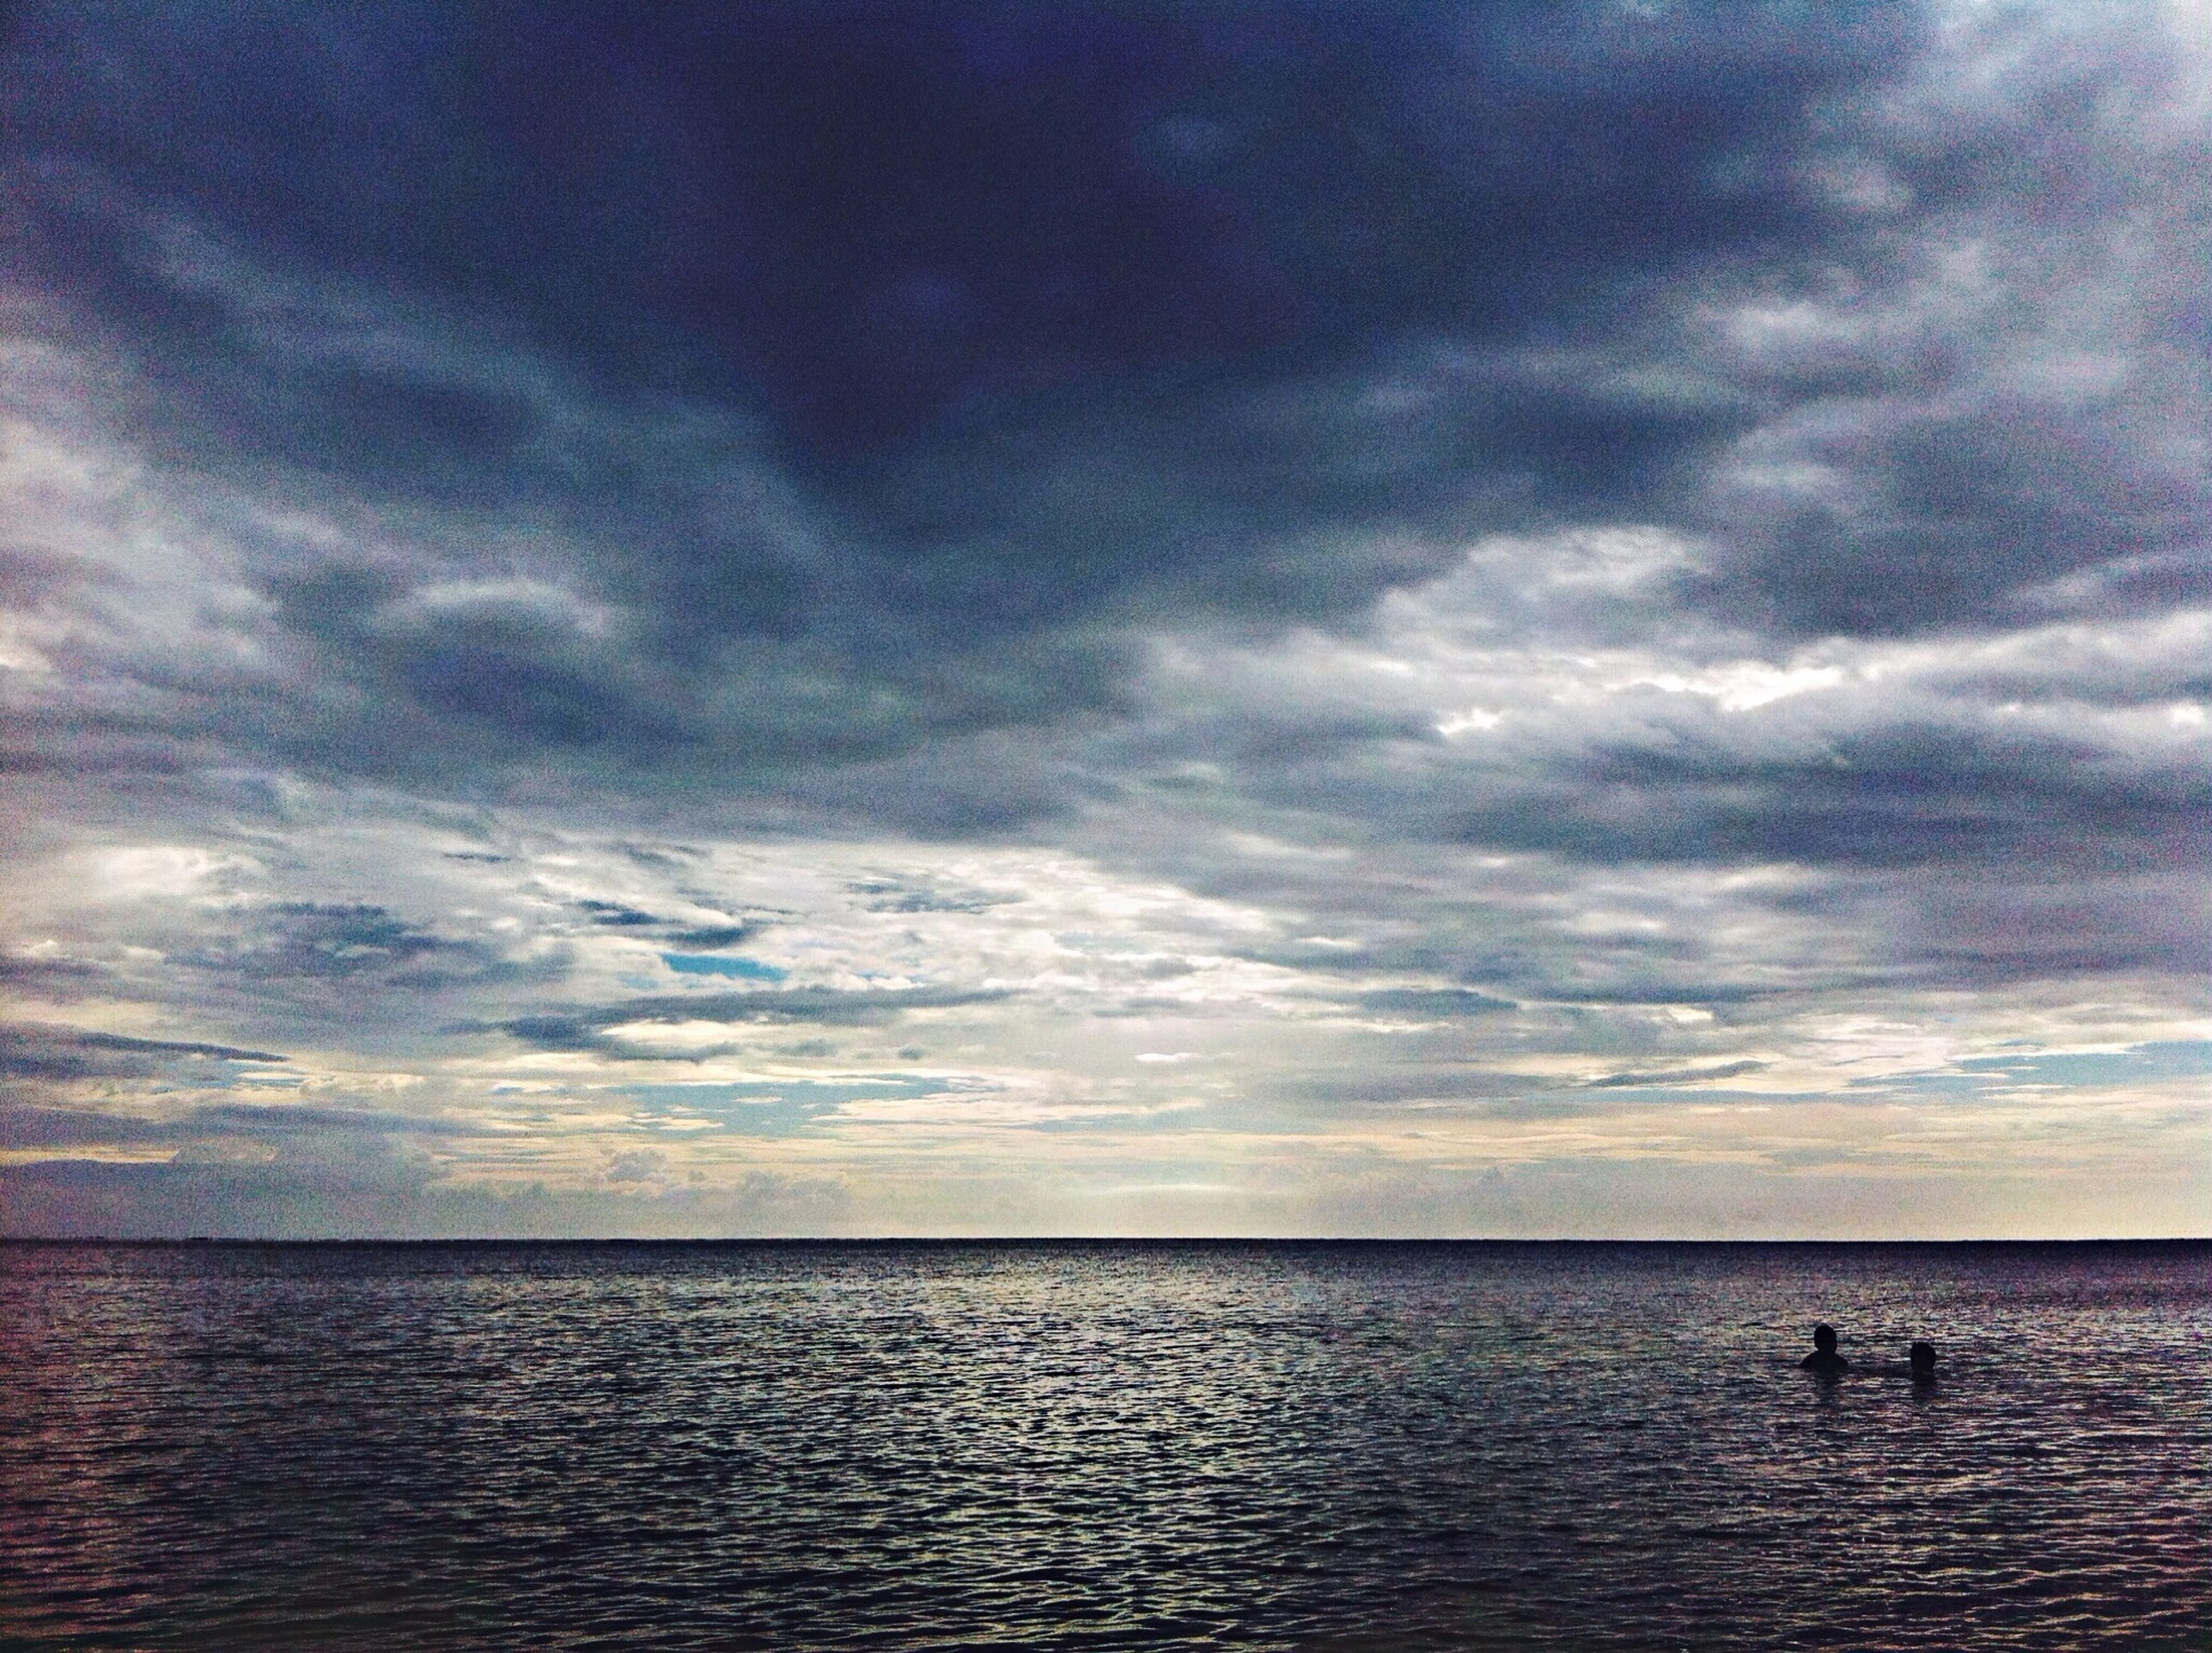 sea, horizon over water, water, sky, tranquil scene, scenics, tranquility, waterfront, cloud - sky, beauty in nature, cloudy, nature, cloud, seascape, idyllic, overcast, weather, dusk, rippled, calm